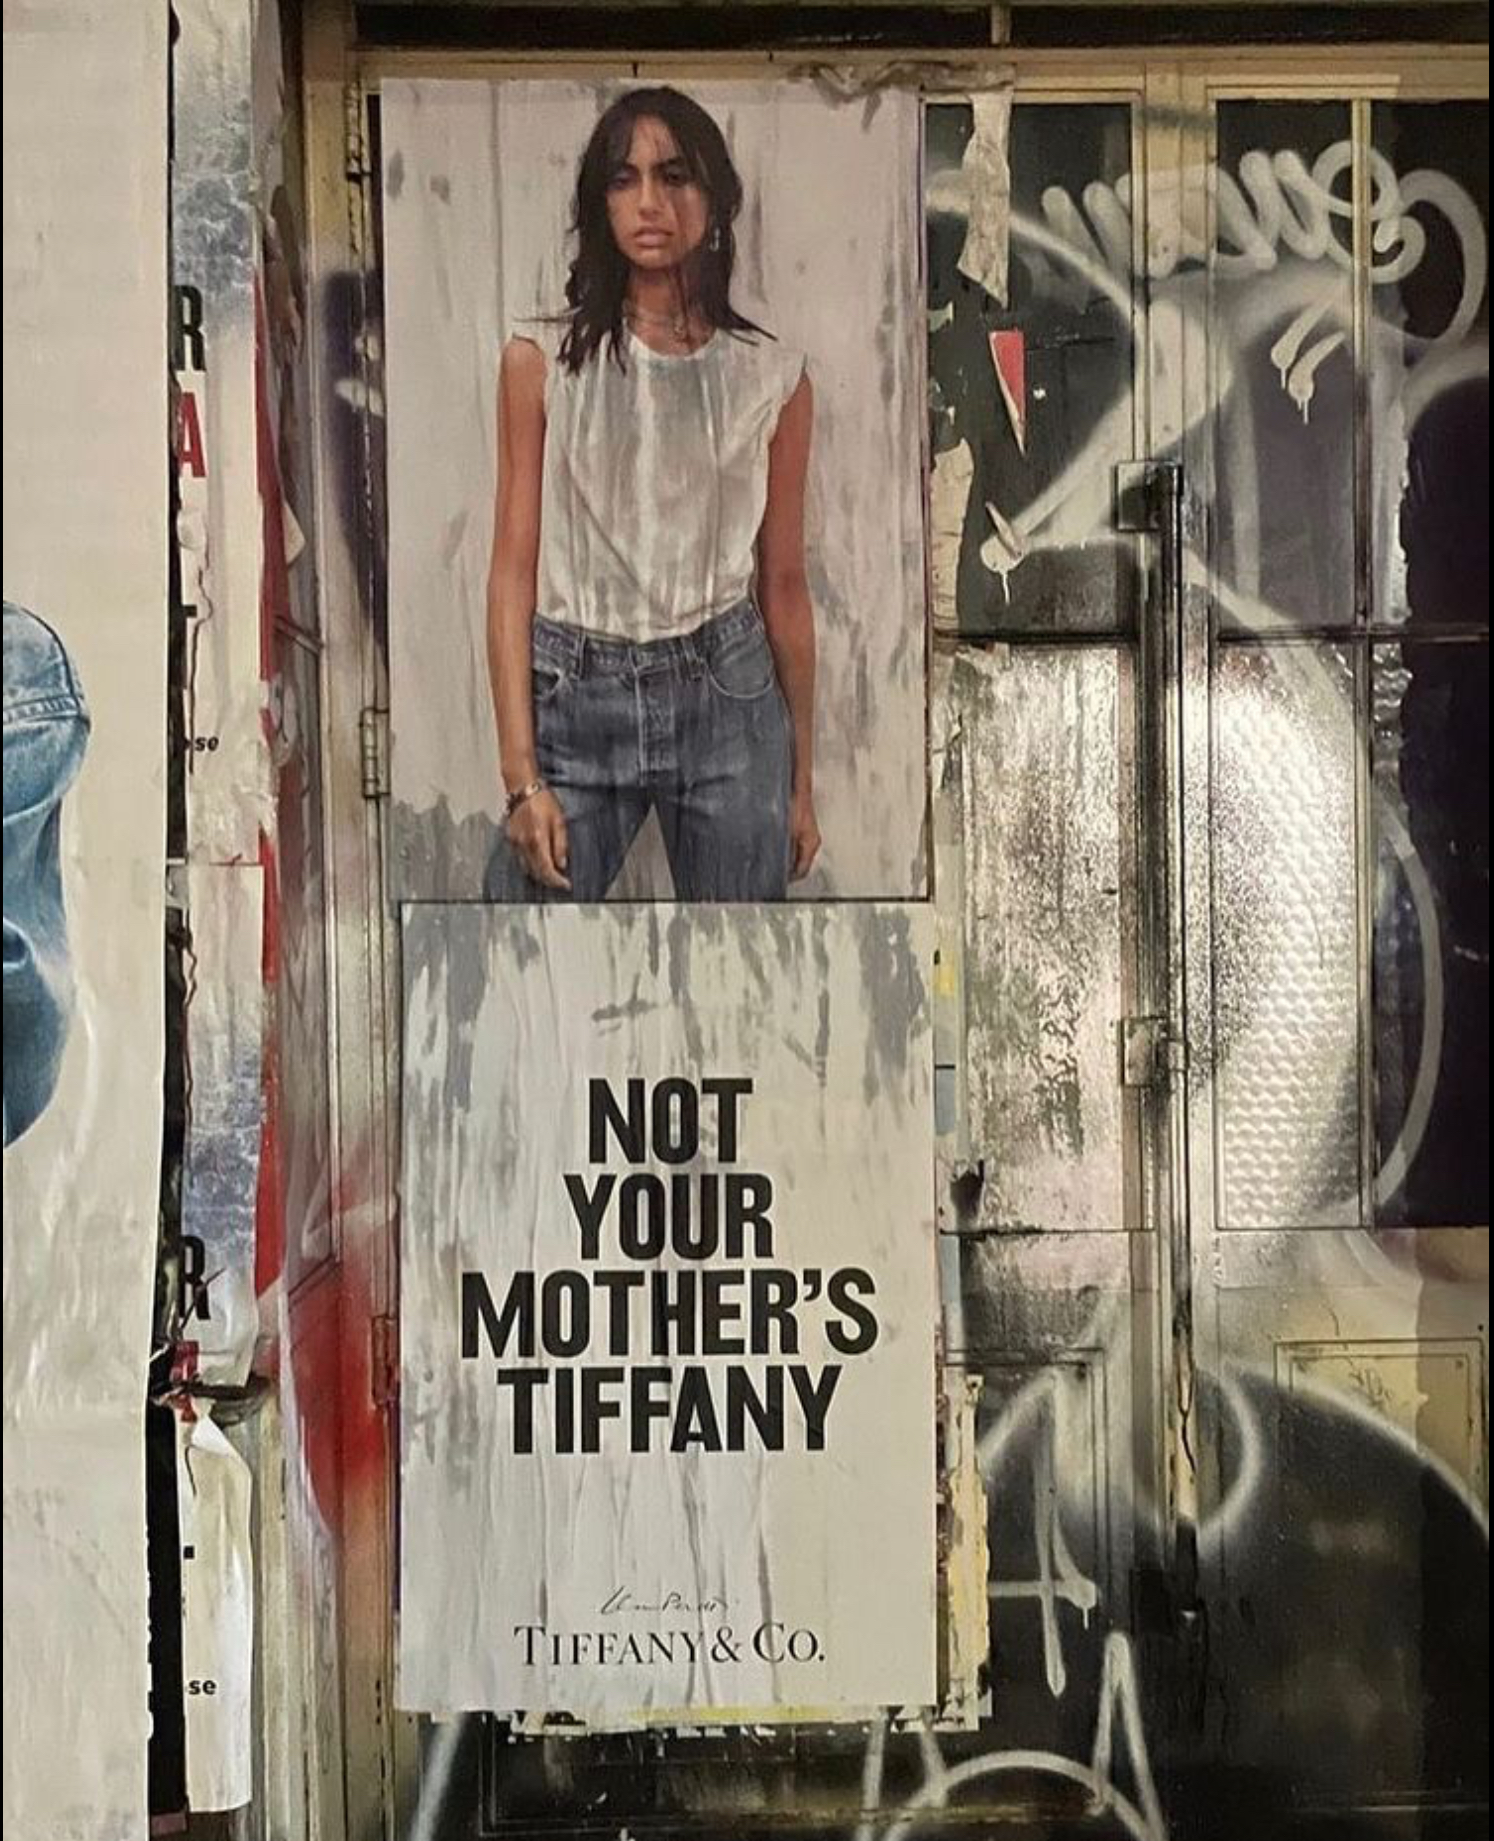 Not Your Mother's Tiffany Campaign